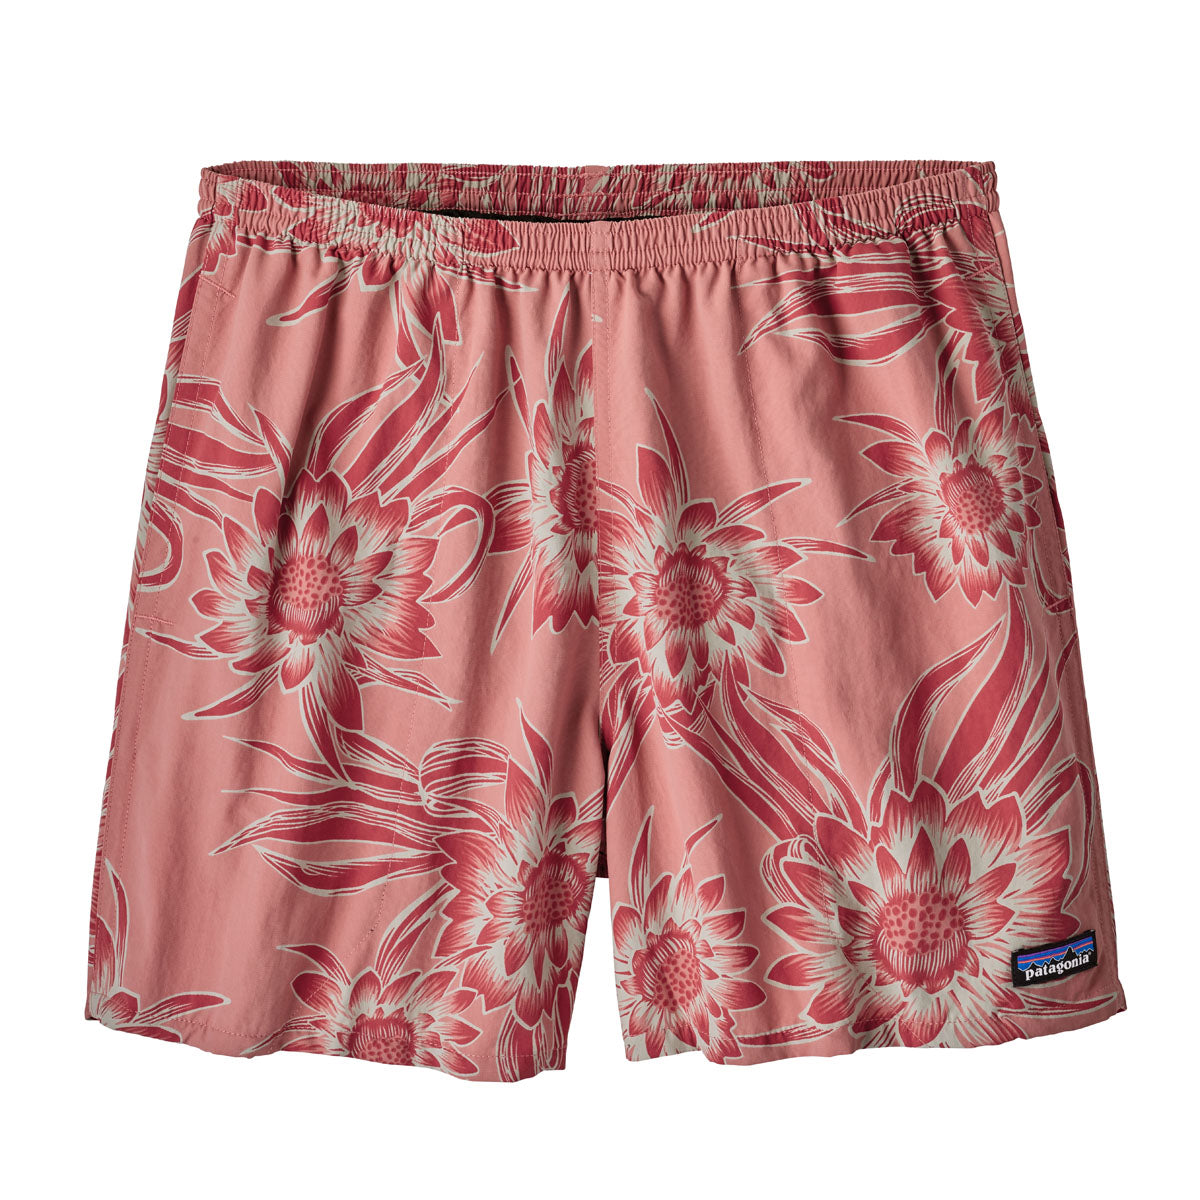 Patagonia Men's Baggies Cereus print short